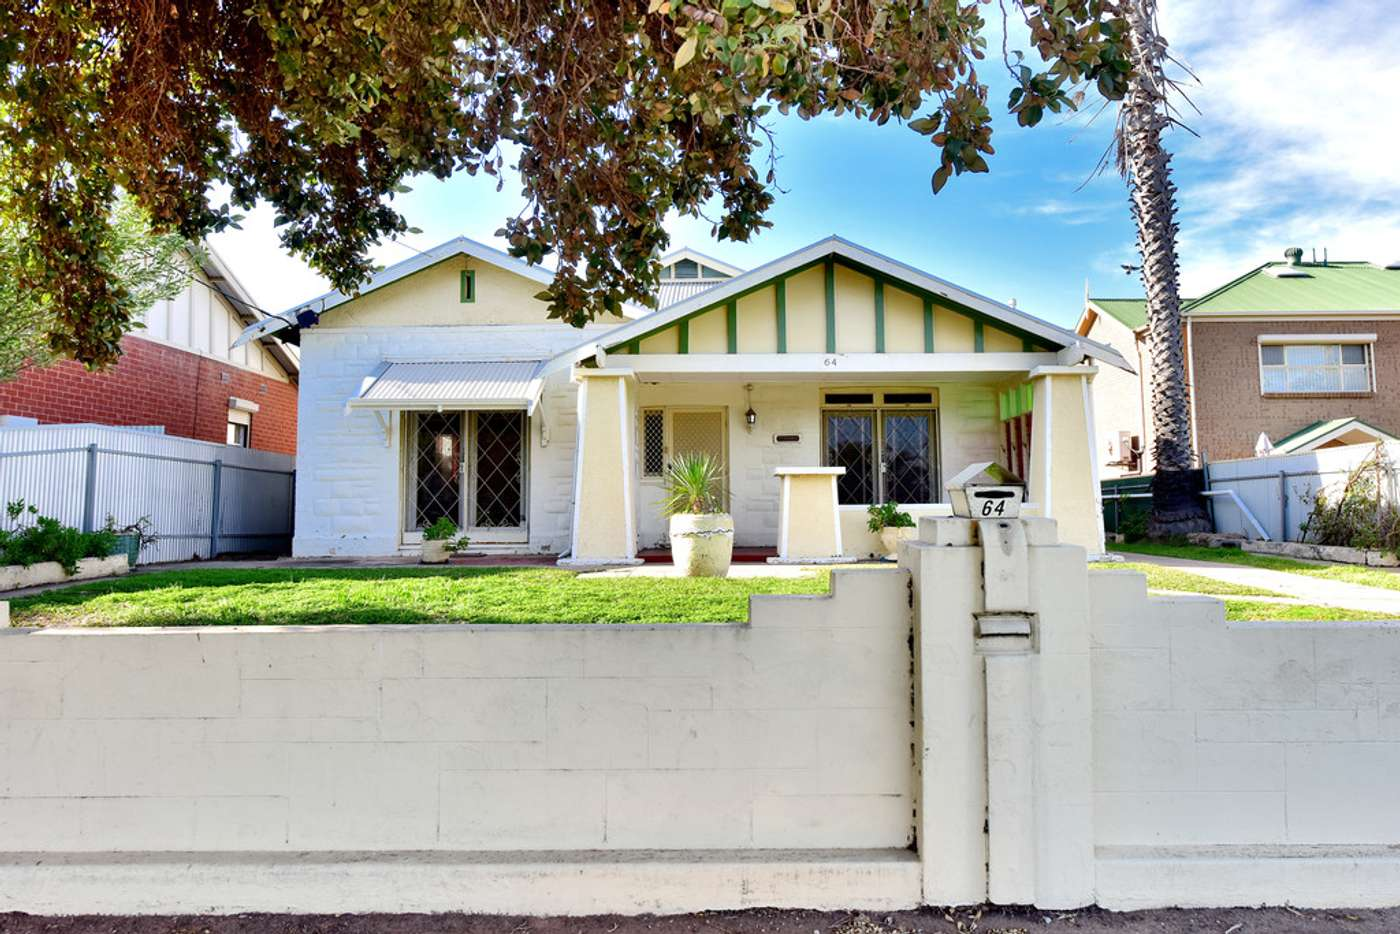 Main view of Homely house listing, 64 Port Road, Alberton SA 5014